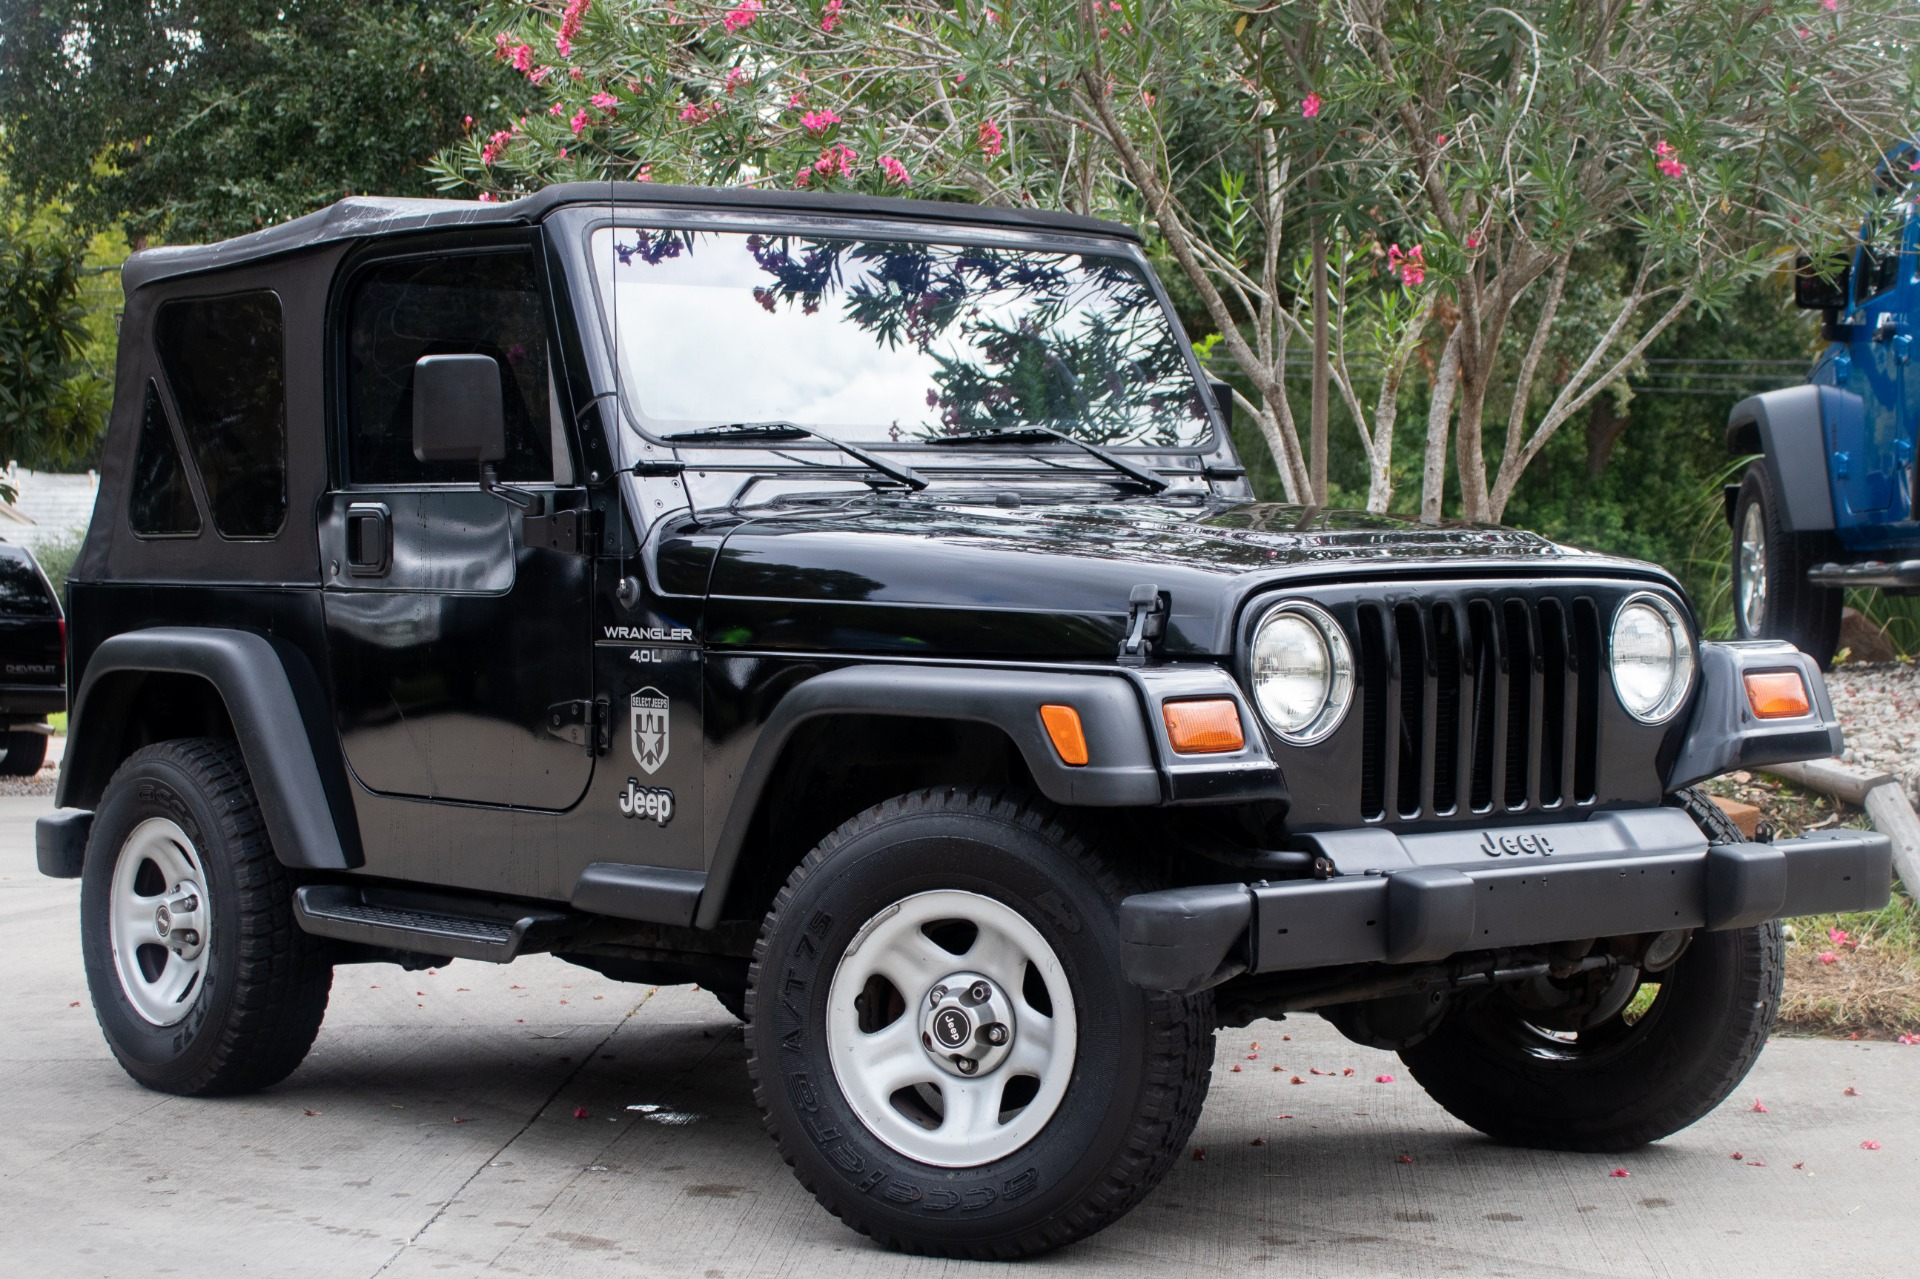 1999 Jeep Wrangler For Sale >> Used 1999 Jeep Wrangler 2dr Sport For Sale 9 995 Select Jeeps